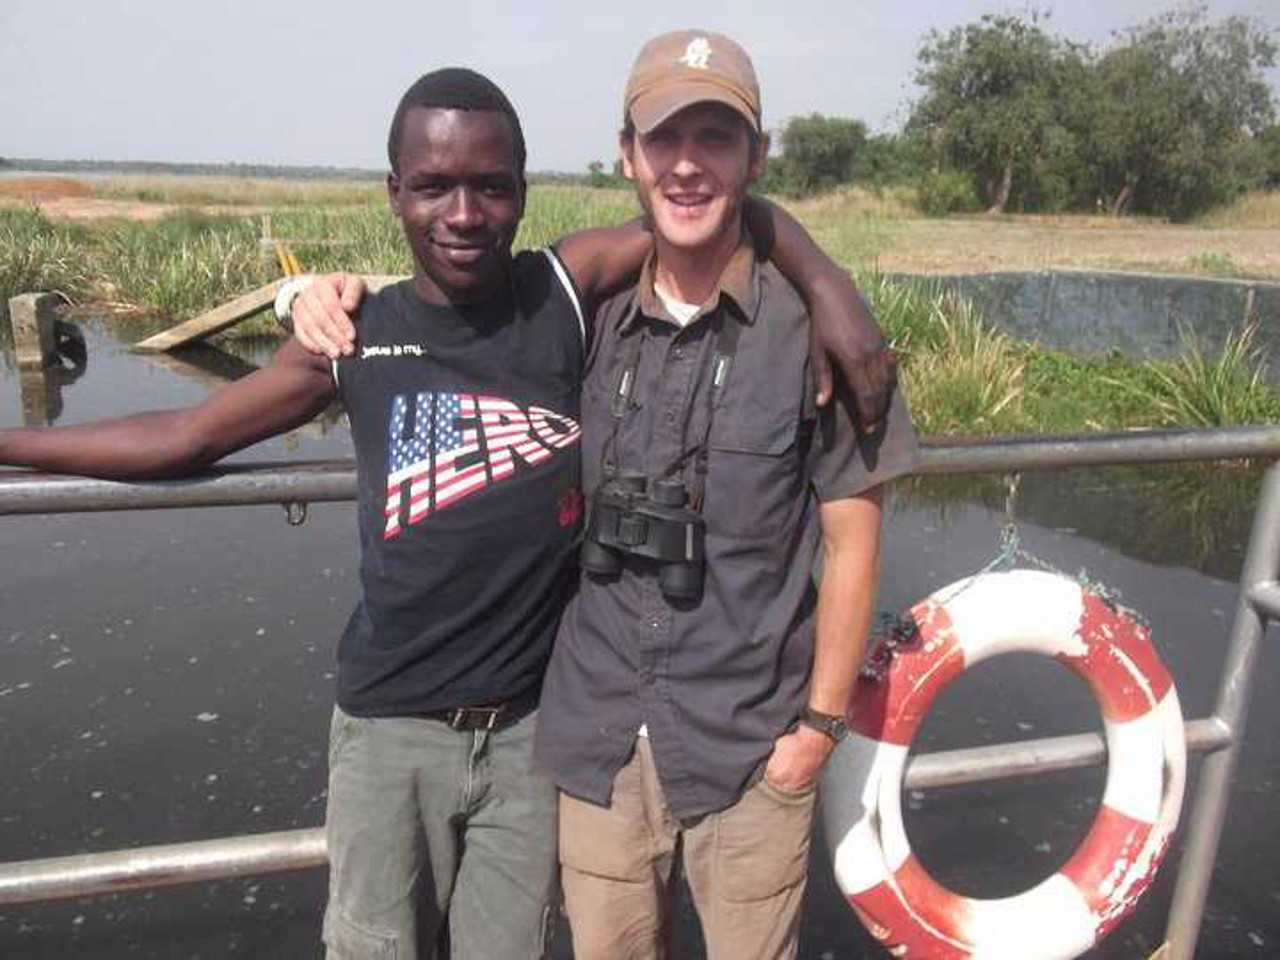 Doug Gass with a friend on a boat on the Nile River.